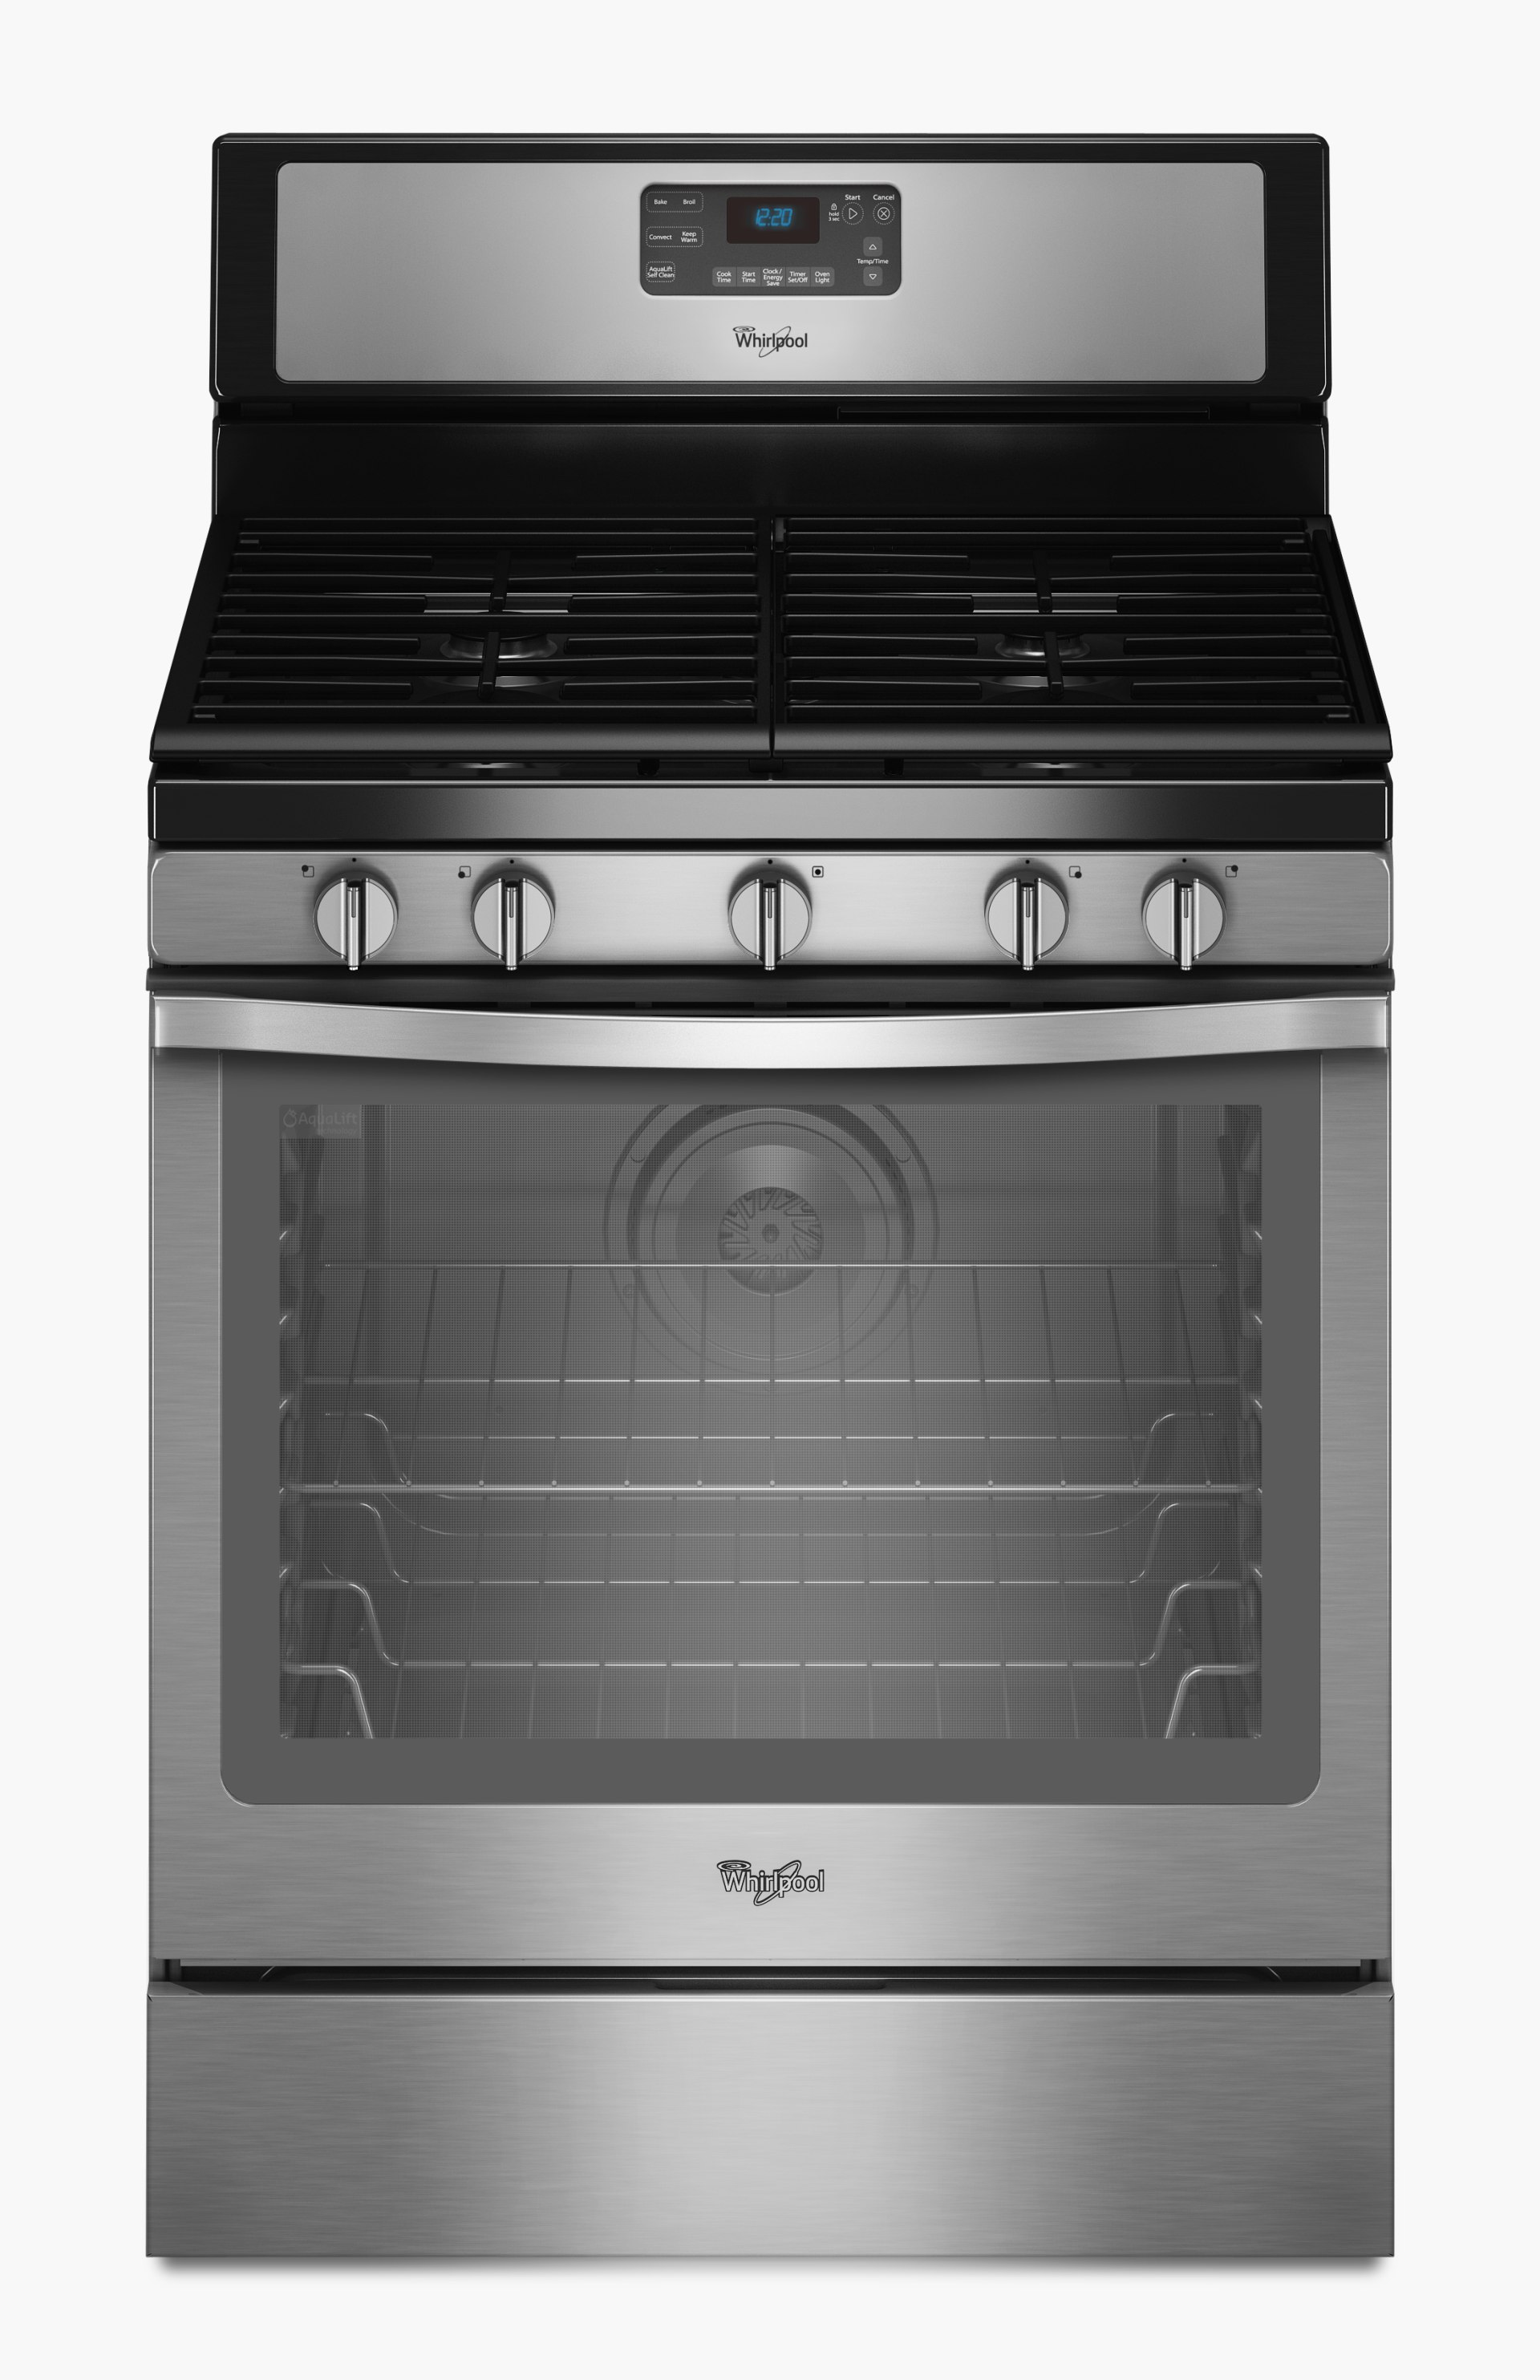 Whirlpool 30 In 5 Burners 5 8 Cu Ft Self Cleaning Convection Oven Freestanding Gas Range Black On Stainless In The Single Oven Gas Ranges Department At Lowes Com